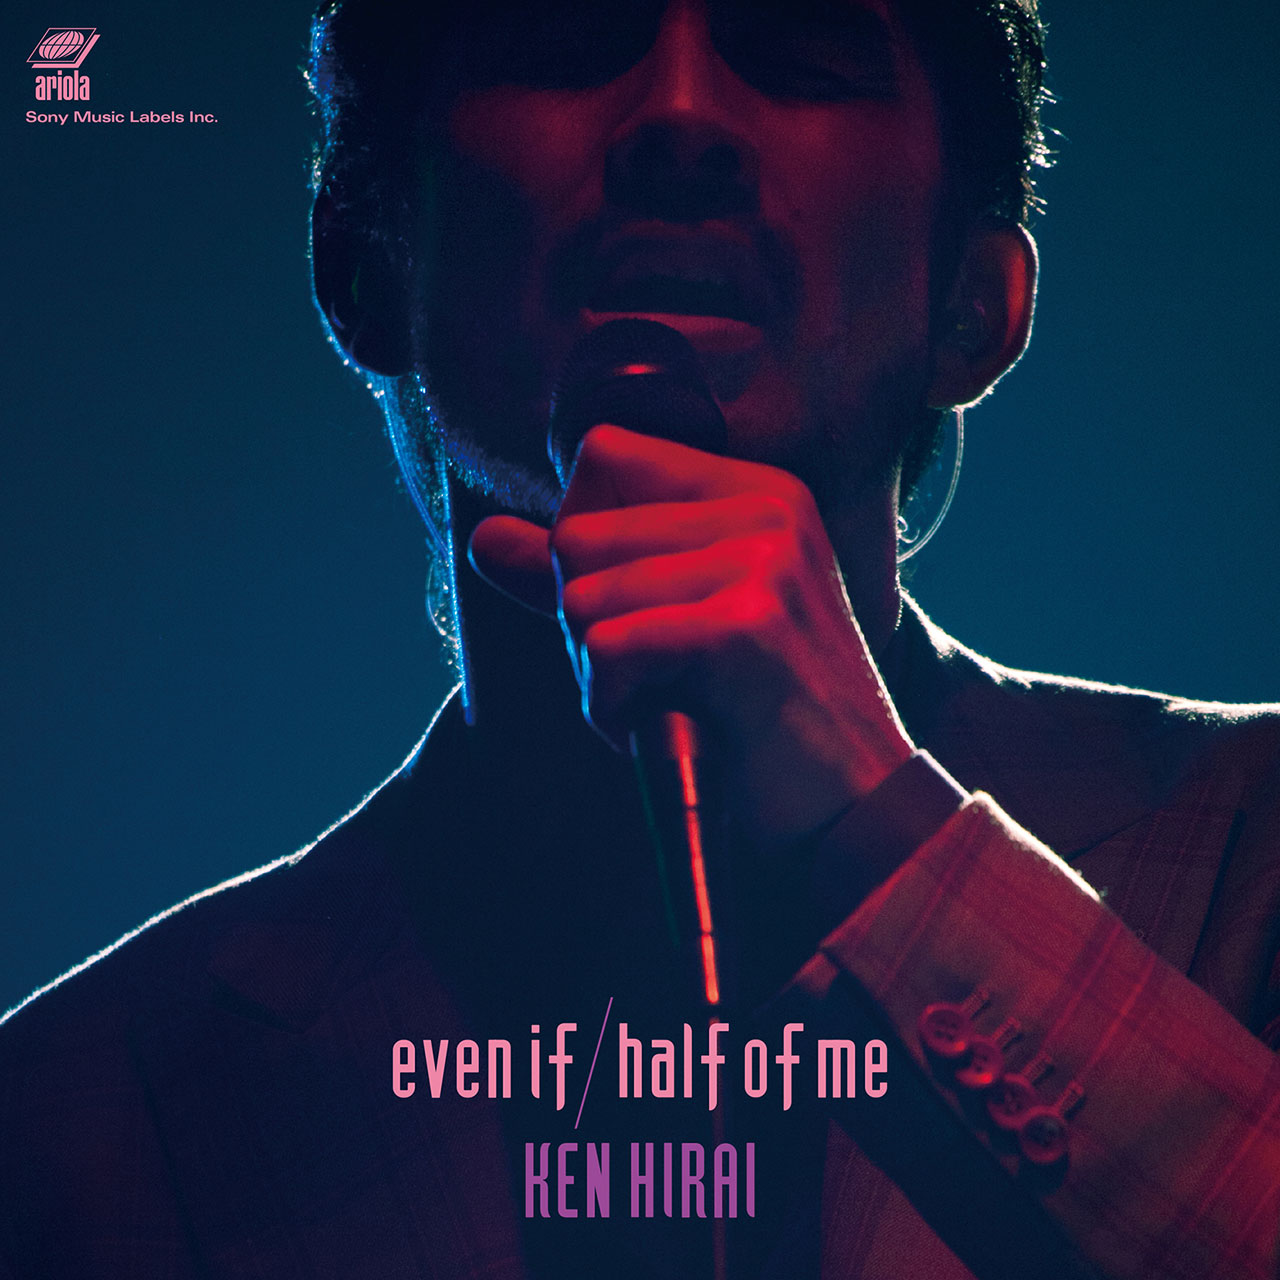 Ken's Bar 20th Anniversary アナログ7インチ 『 even if / half of me 』